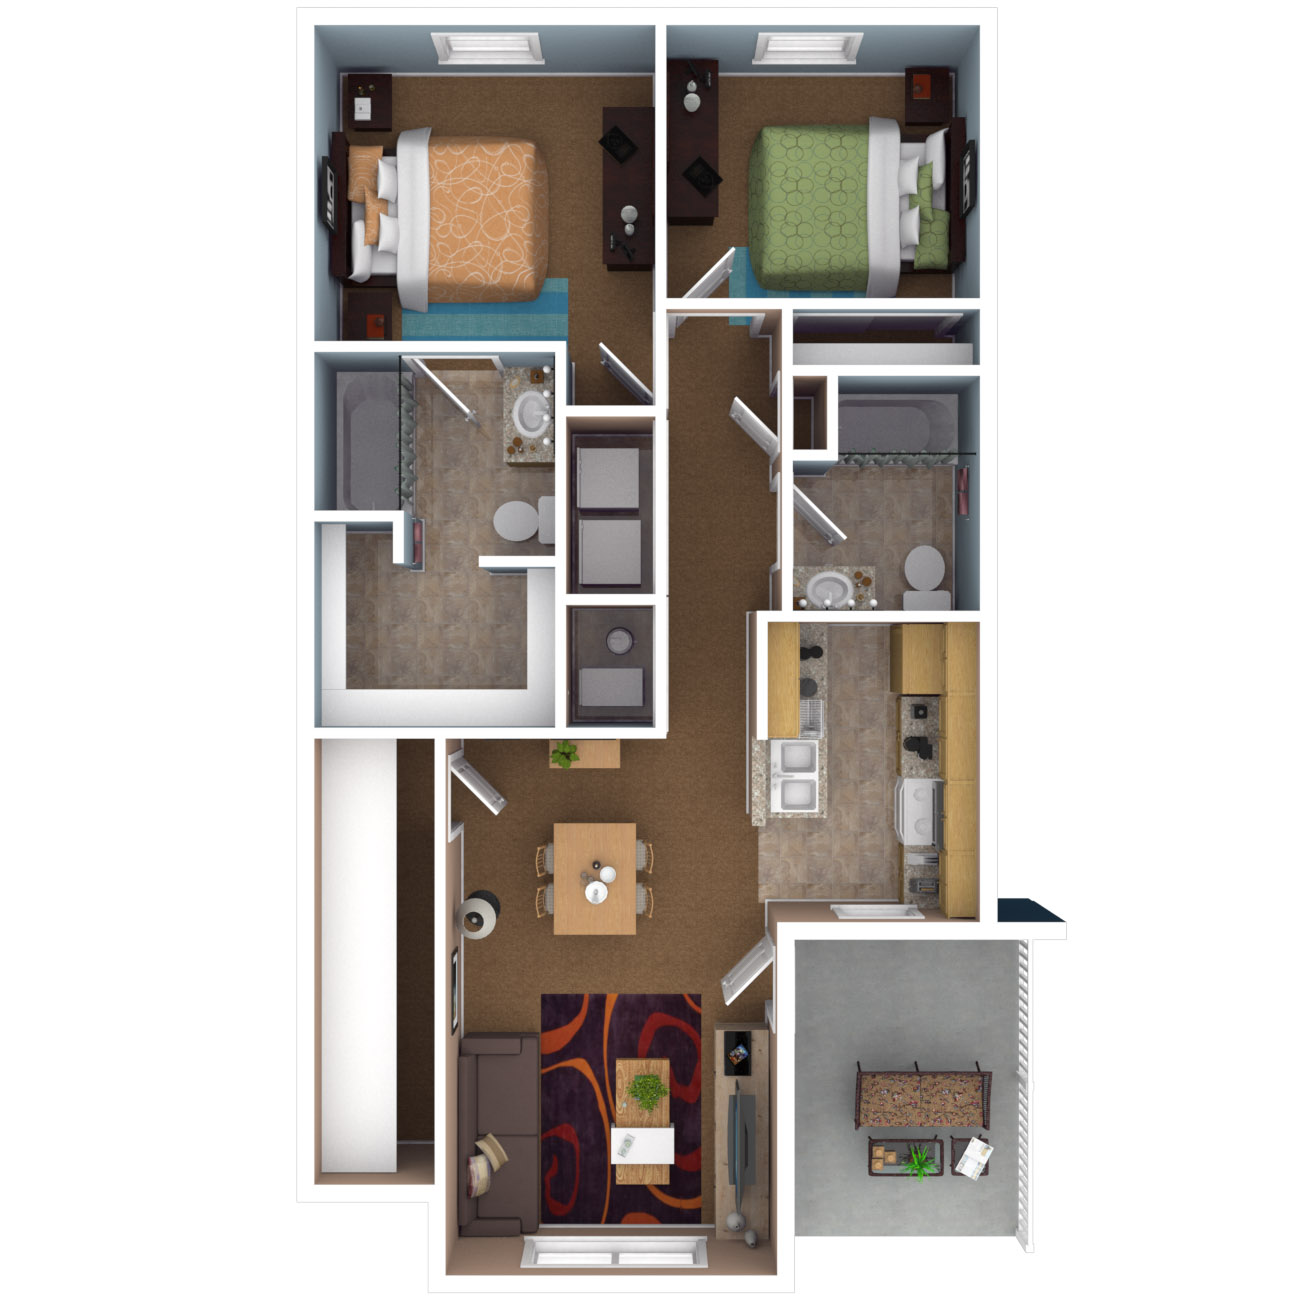 Bedroom Apartment Floor Plan apartments in indianapolis | floor plans